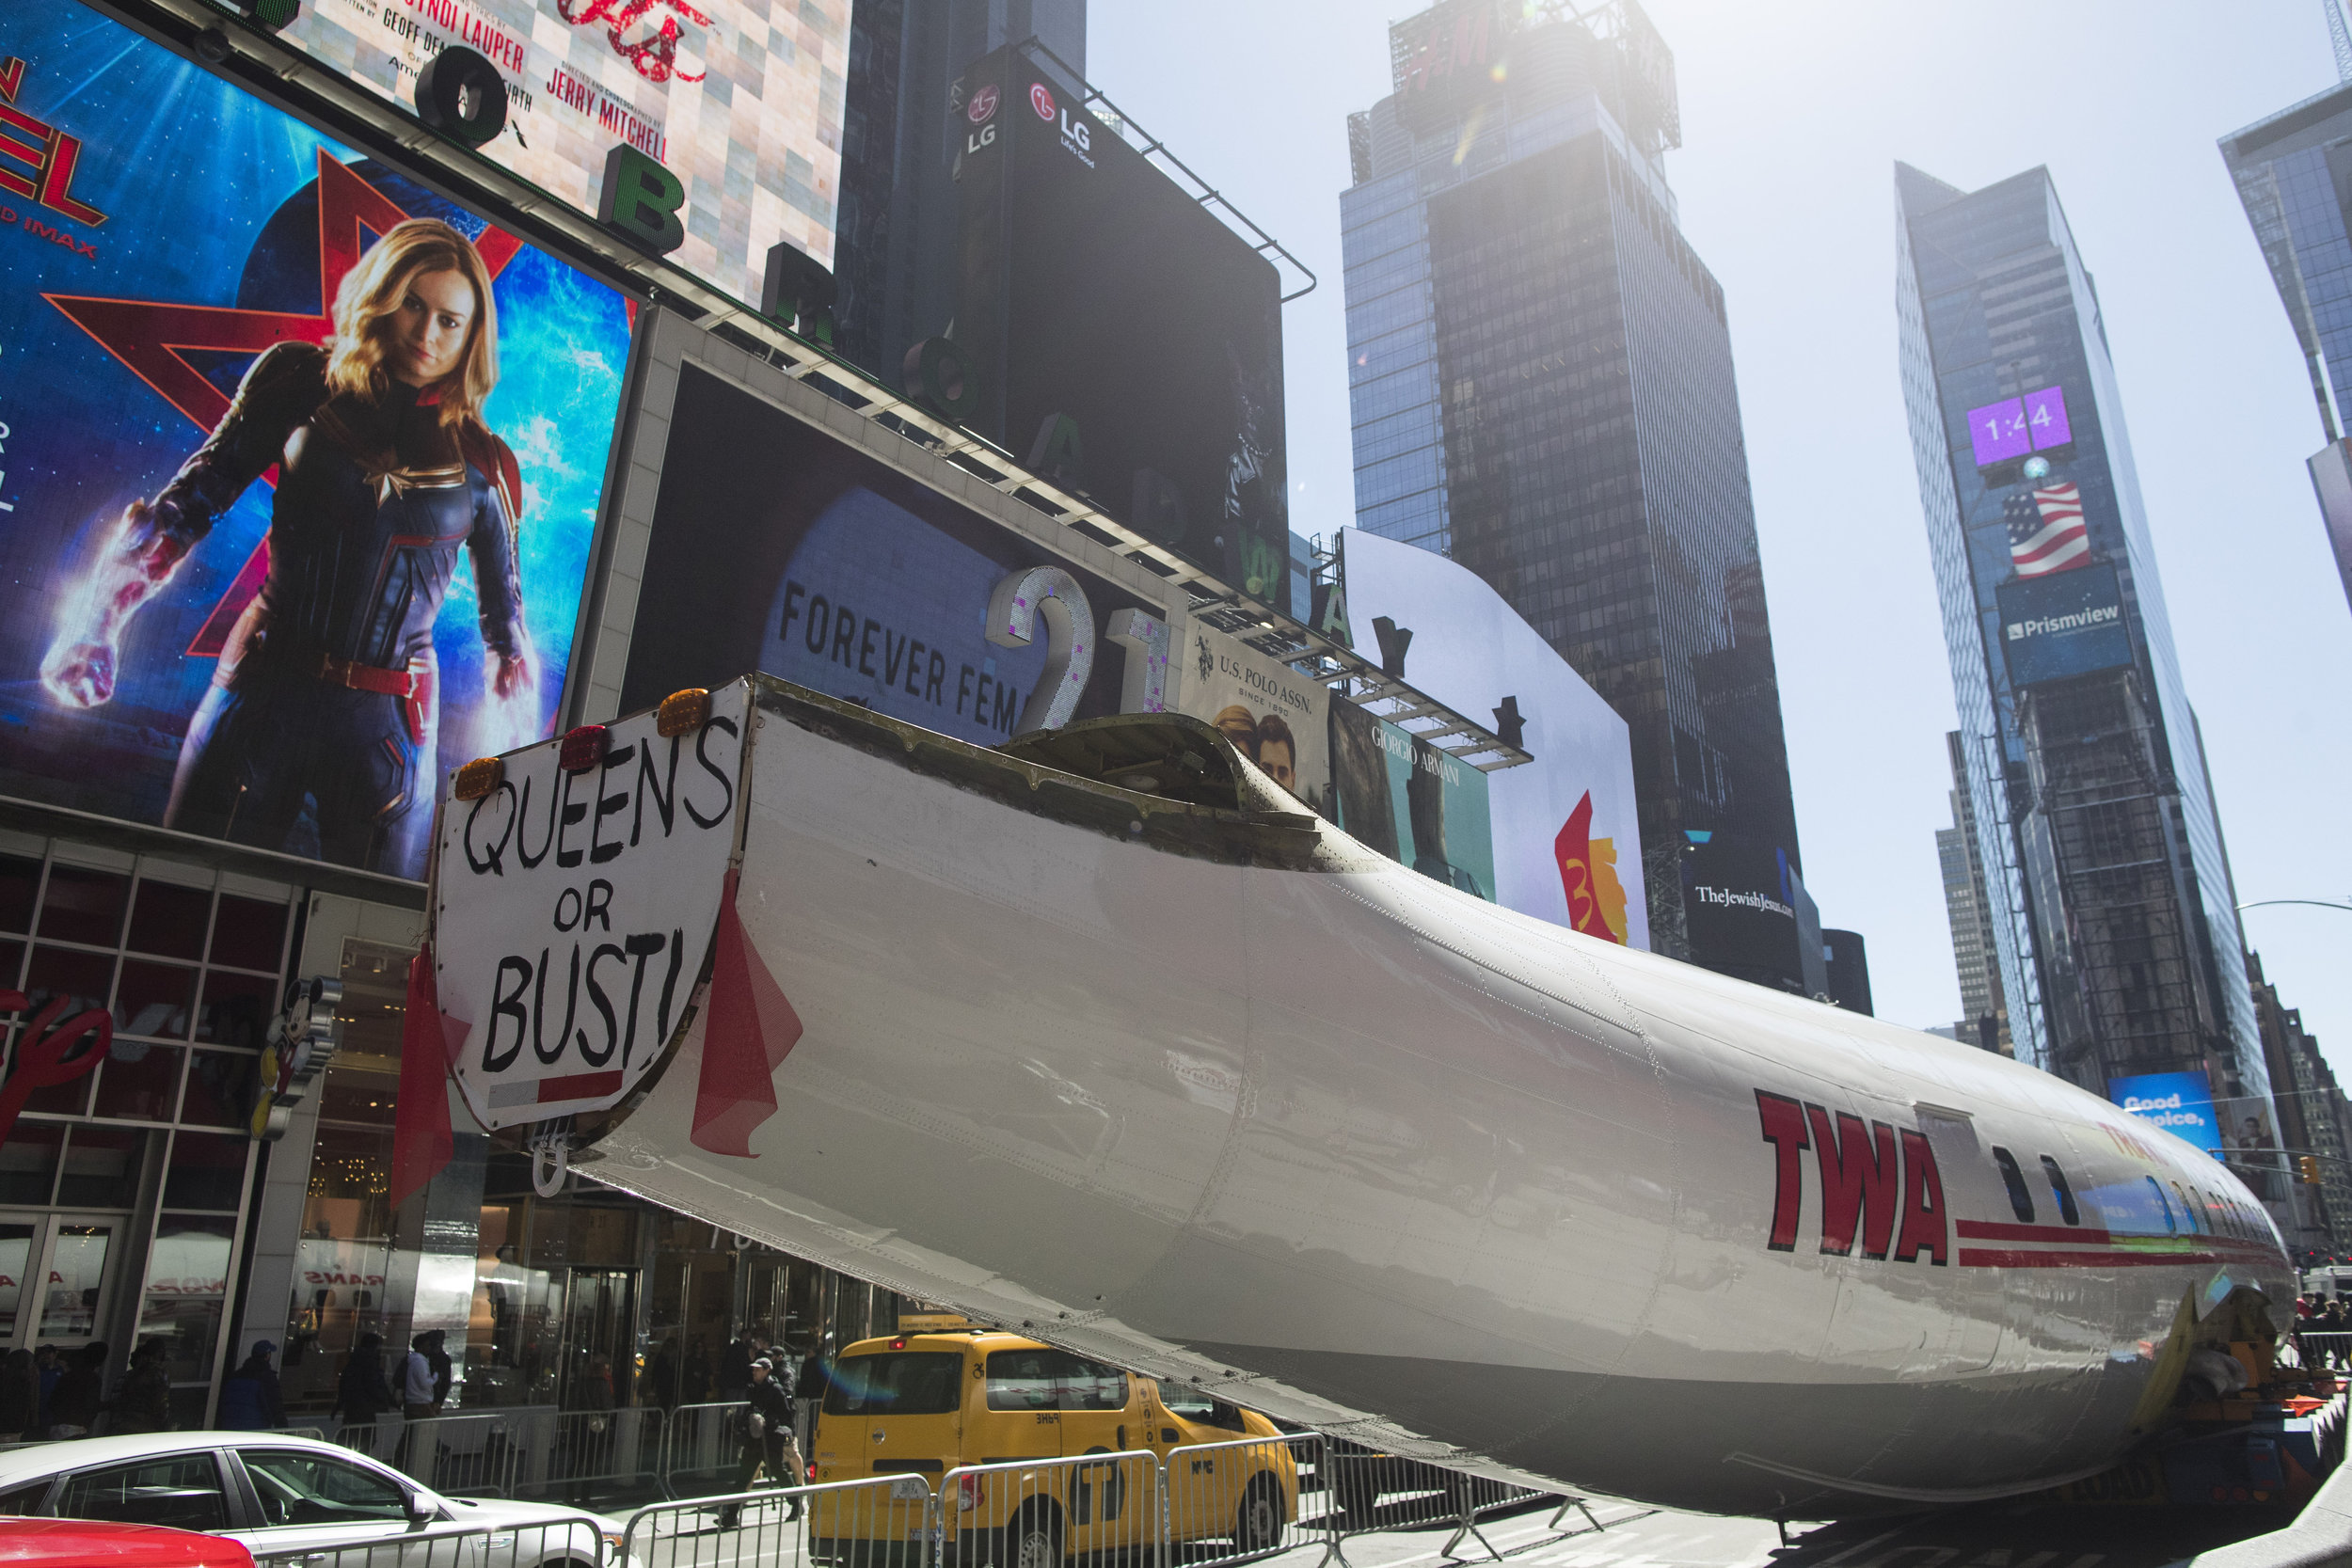 """A Lockheed Constellation L-1649A Starliner, known as the """"Connie,"""" was parked in Times Square on Saturday. The vintage commercial airplane will serve as the cocktail lounge outside the new TWA Hotel at JFK airport. AP Photos/Mary Altaffer."""